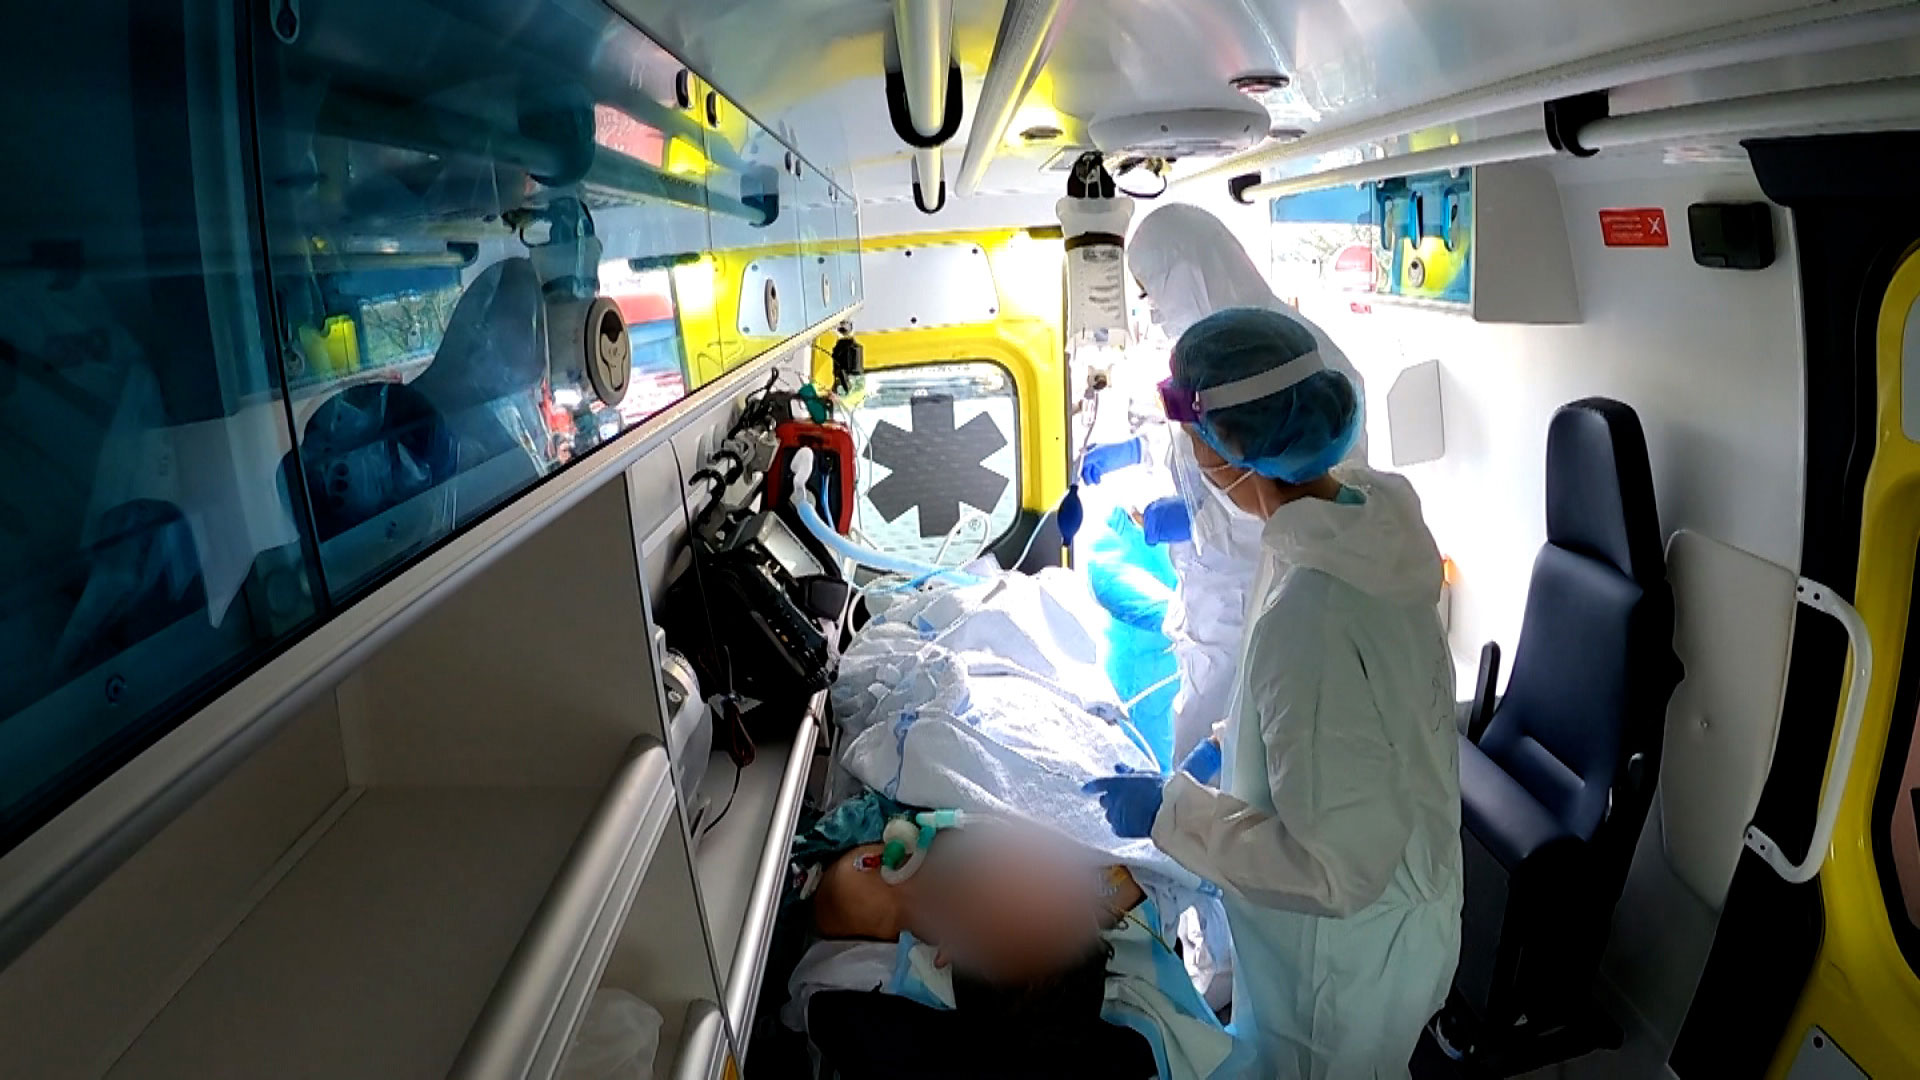 Ambulance workers in Portugal transport a Covid-19 patient.